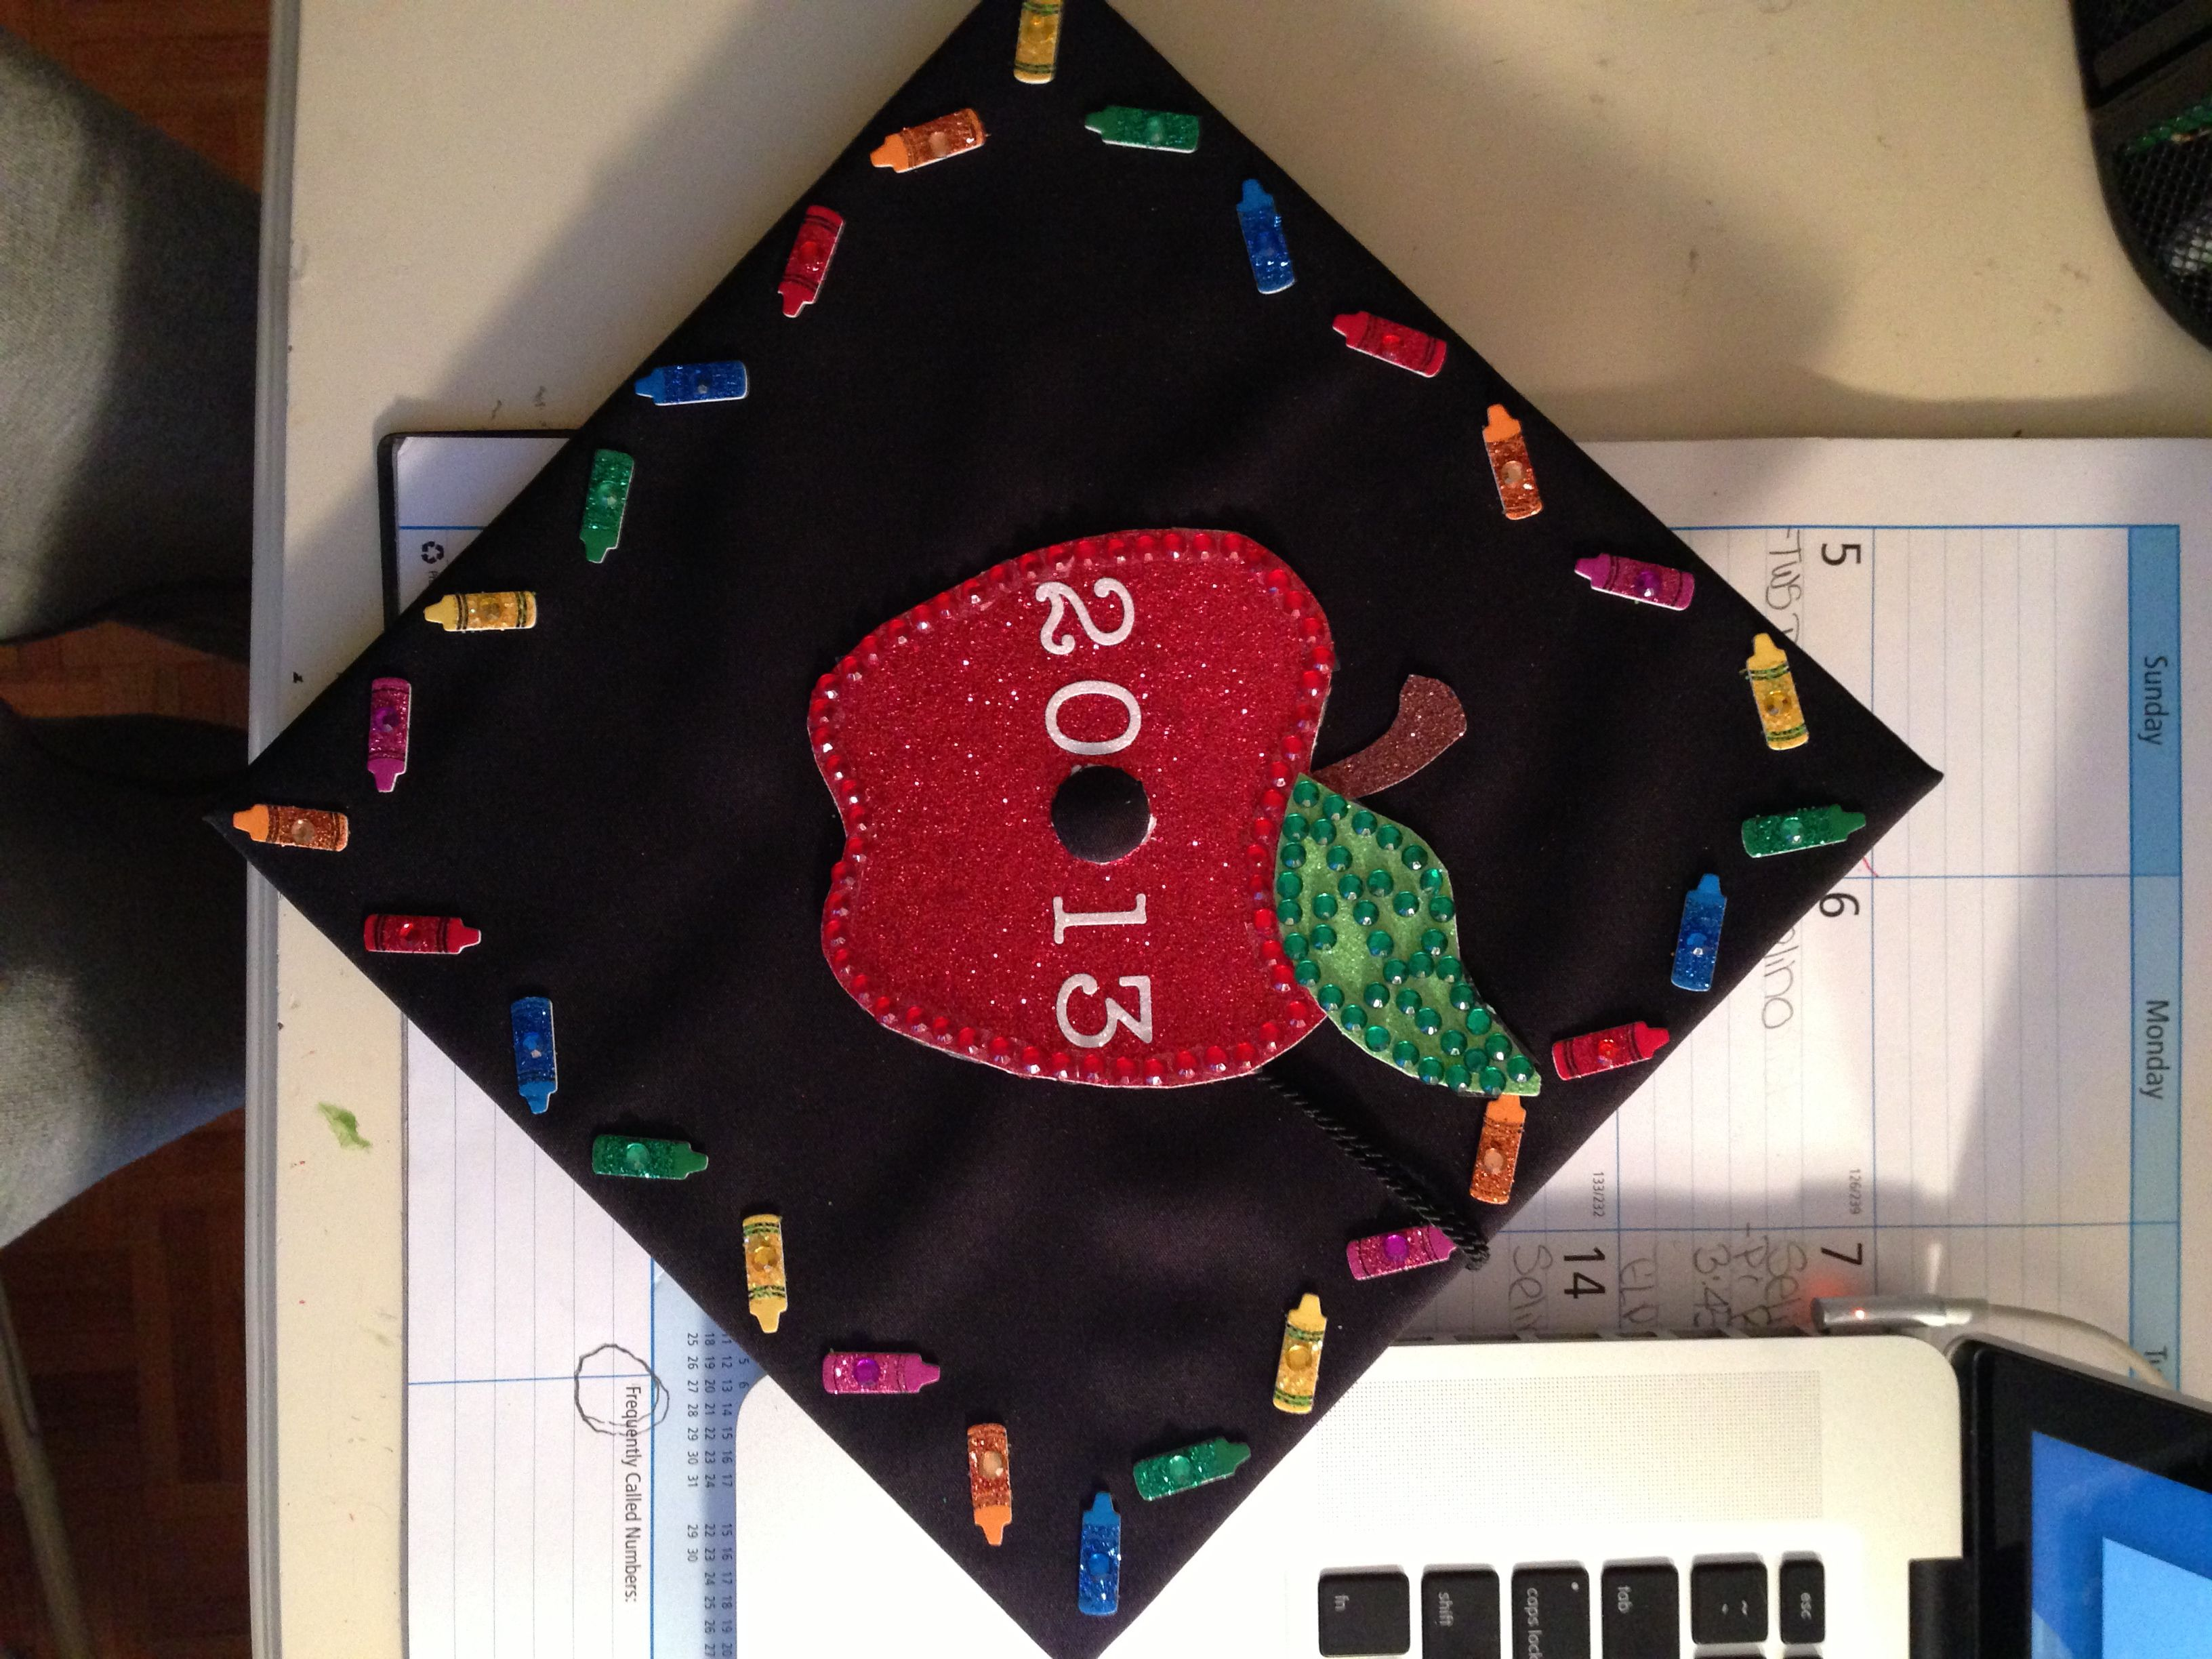 Decorating graduation cap ideas for teachers - Teacher Graduation Cap